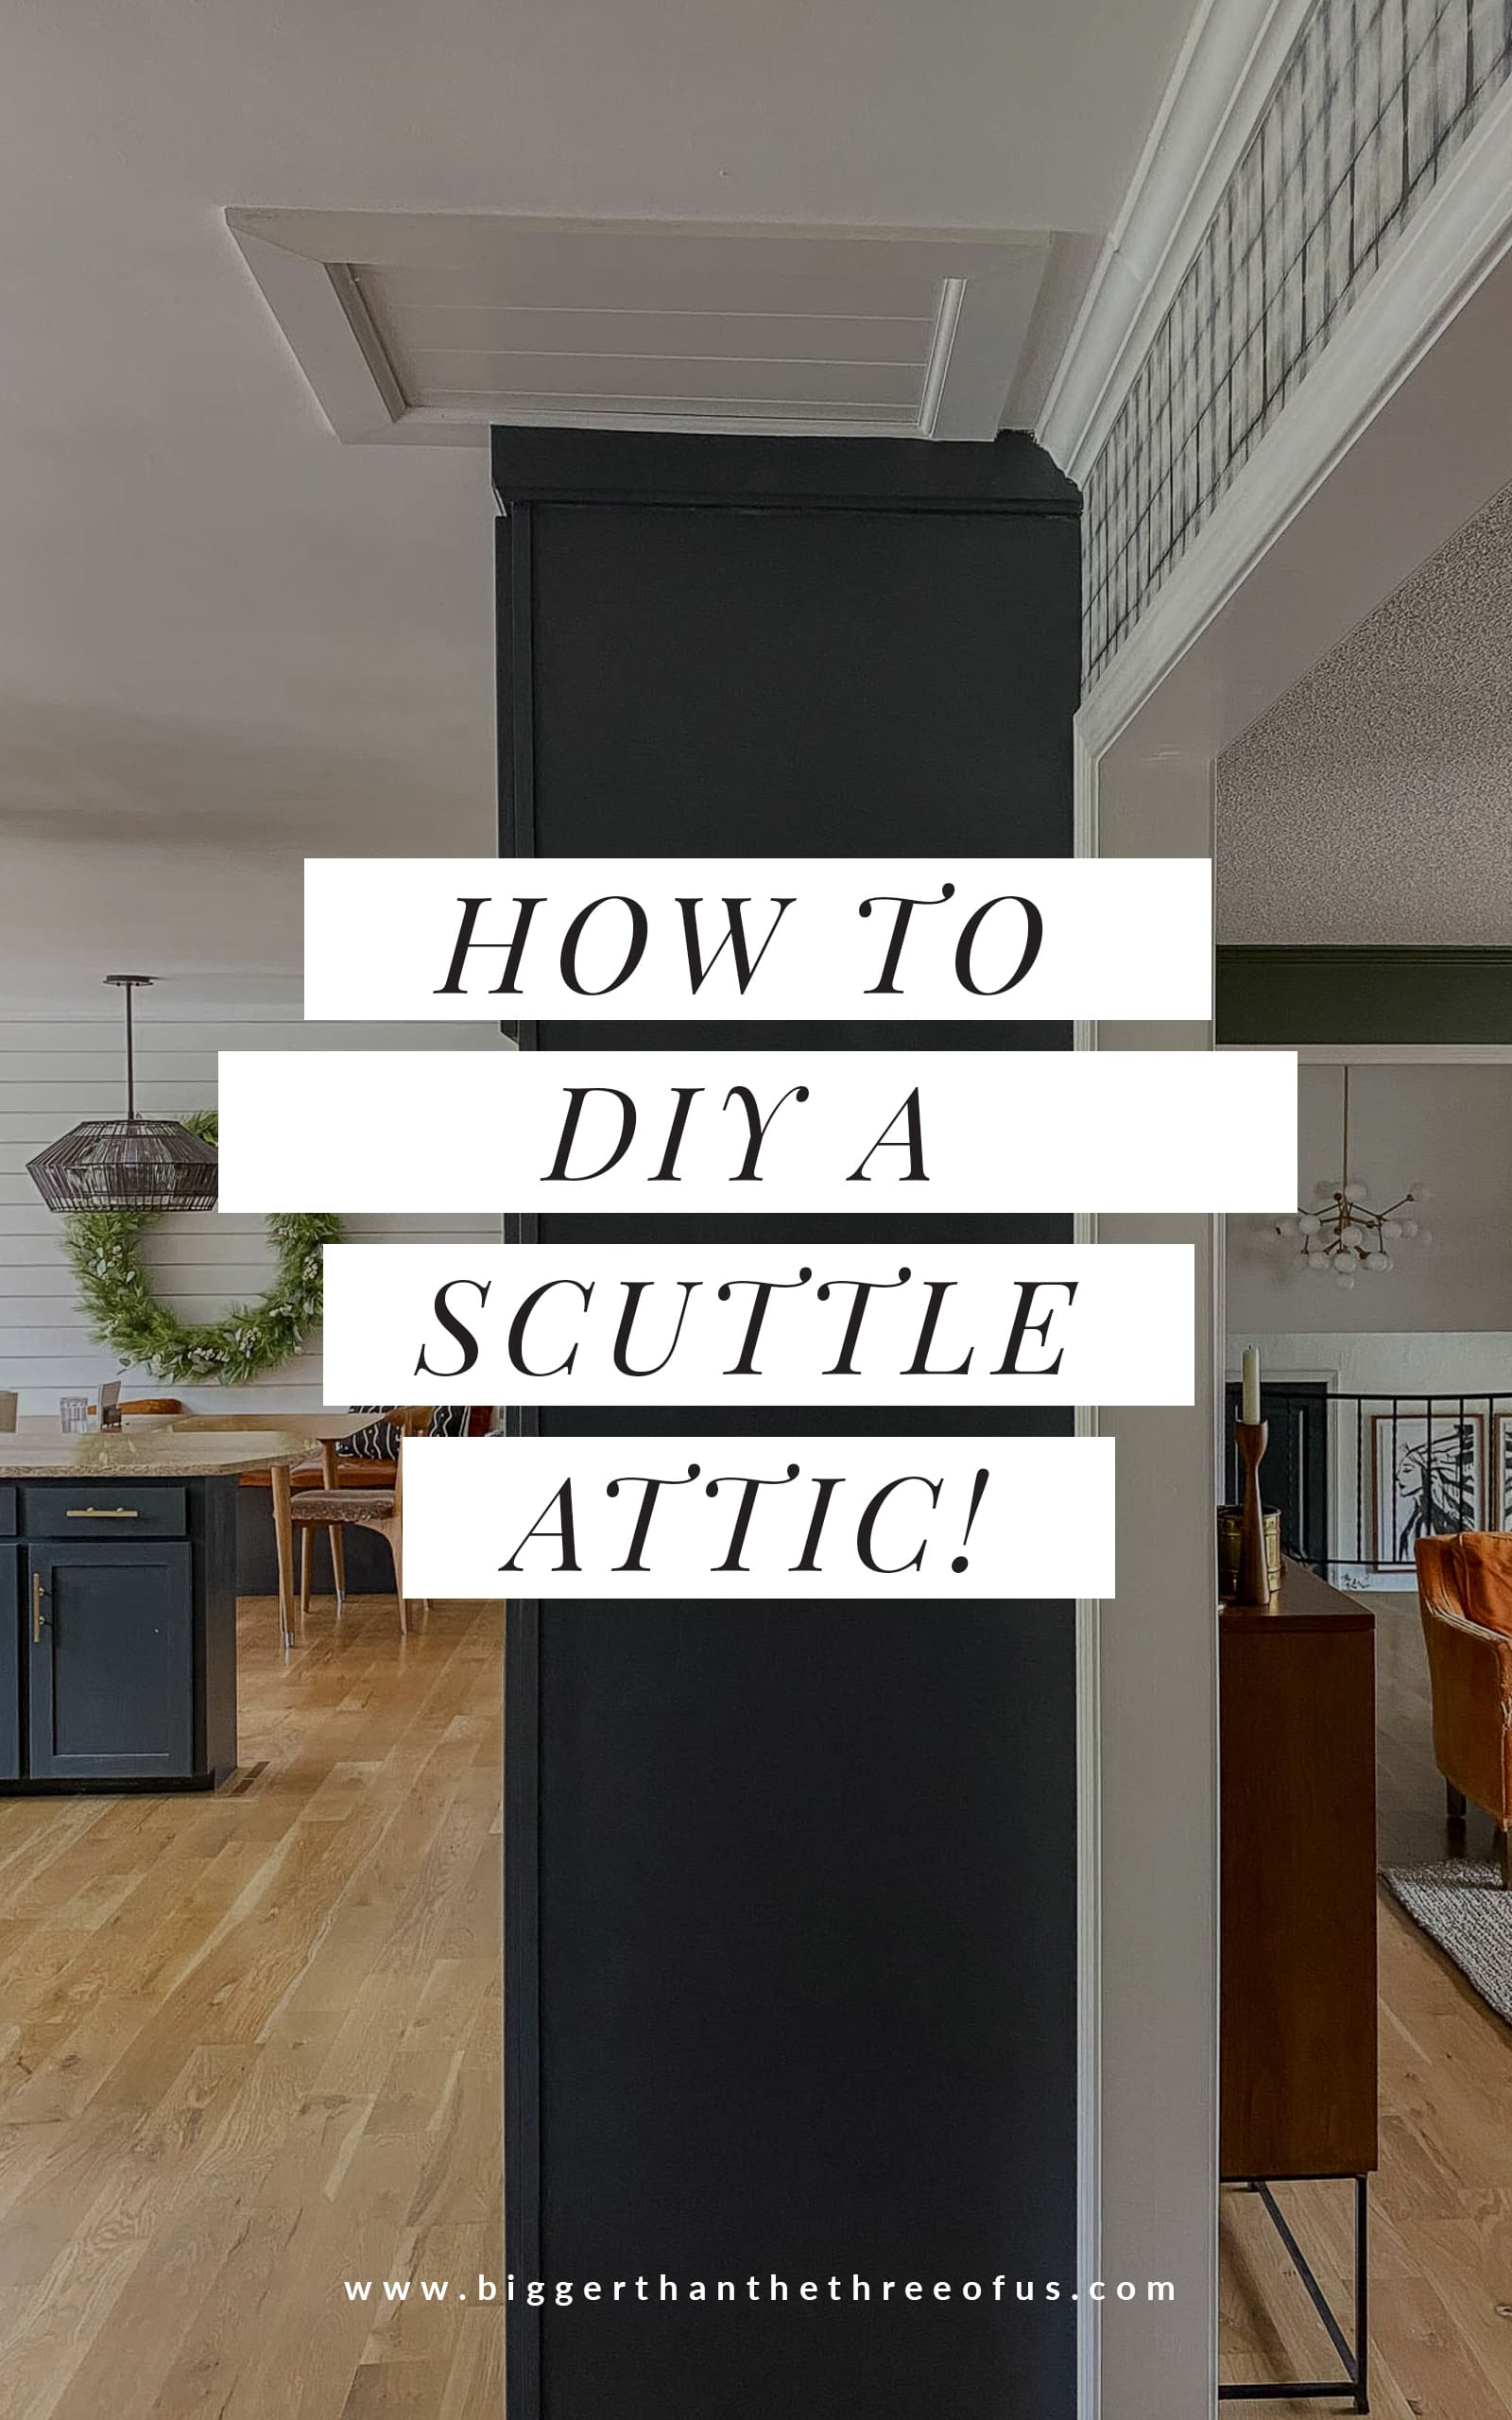 attic access panel scuttle